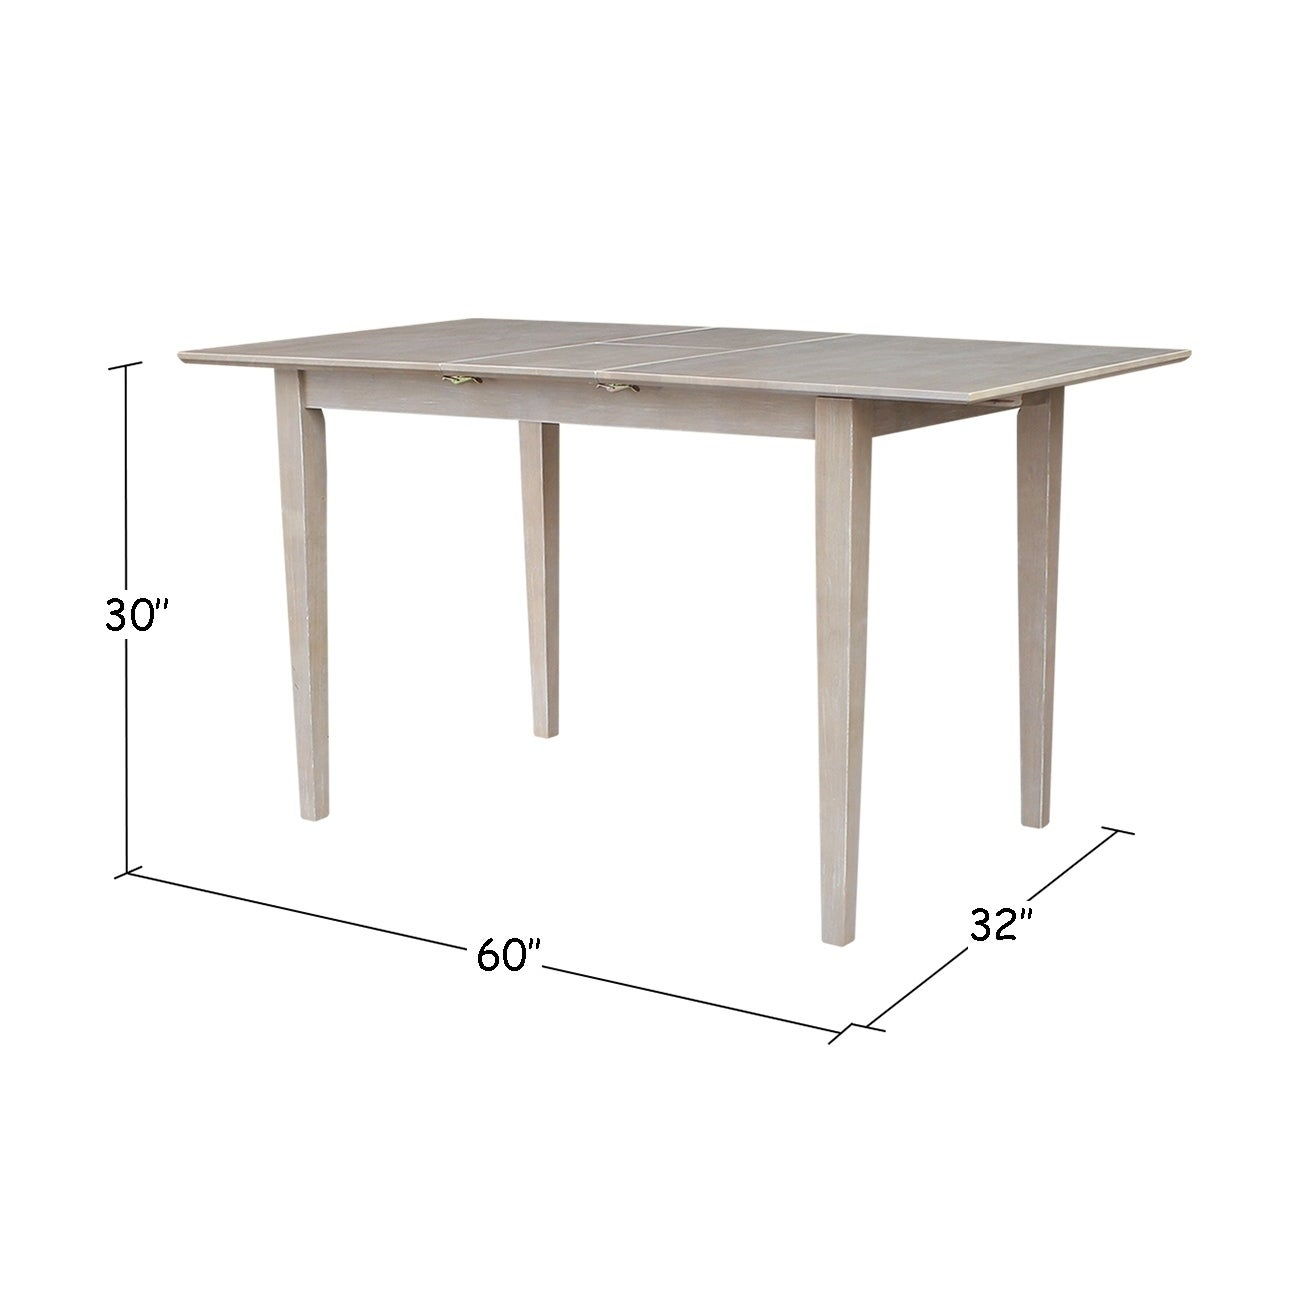 Table With Butterfly Extension – Washed Gray Taupe – Washed Gray Taupe With 2017 Gray Wash Benchwright Extending Dining Tables (View 10 of 25)